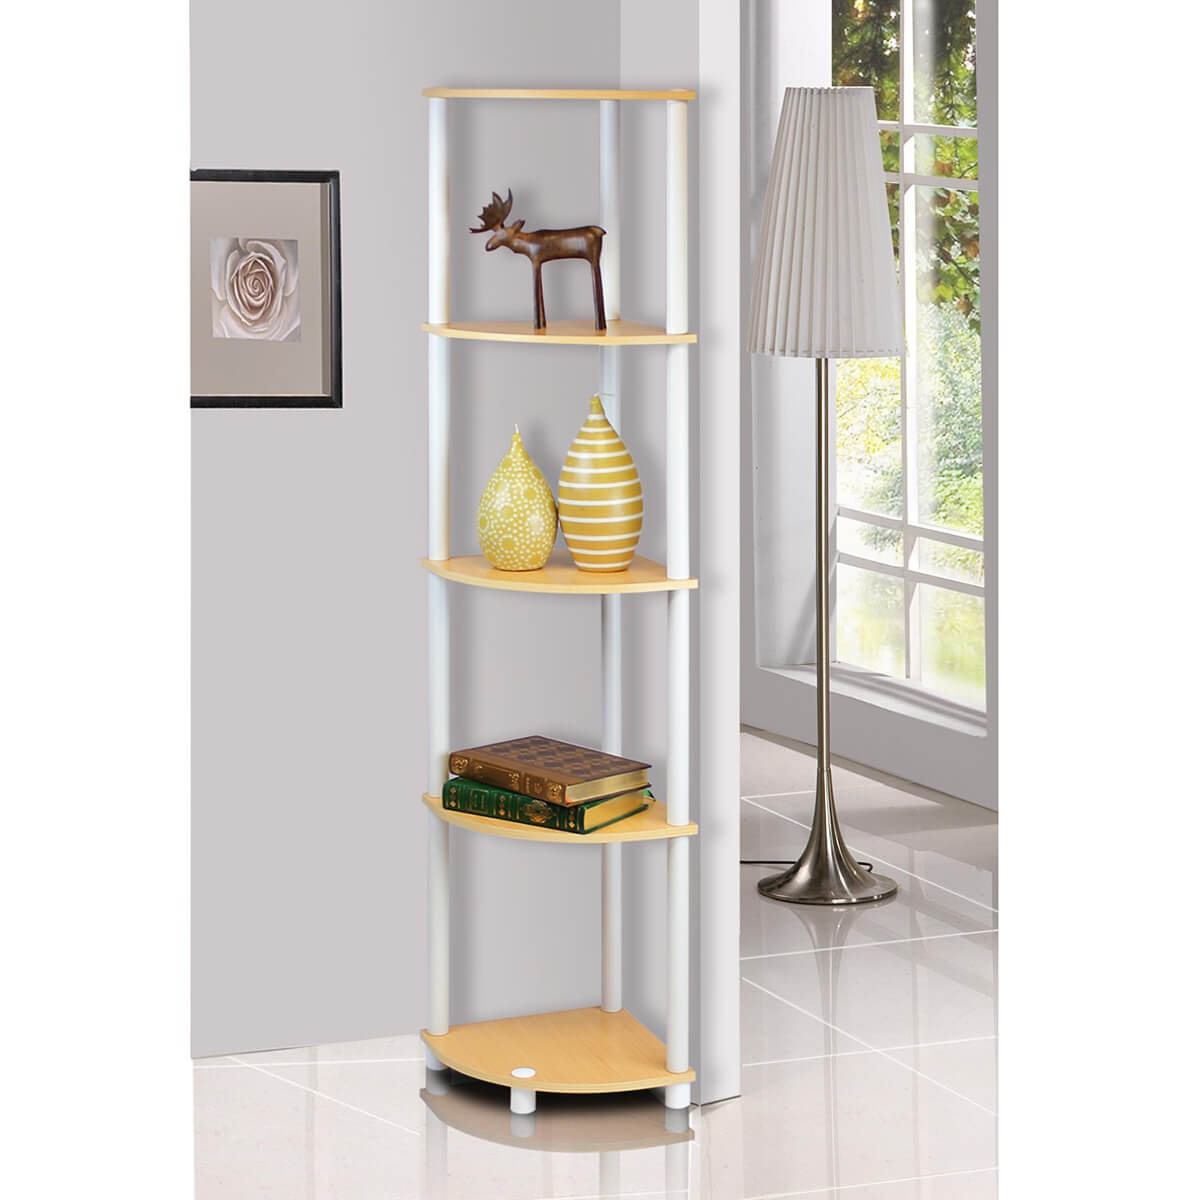 Chic Freestanding Turn-N-Tube Bookcase